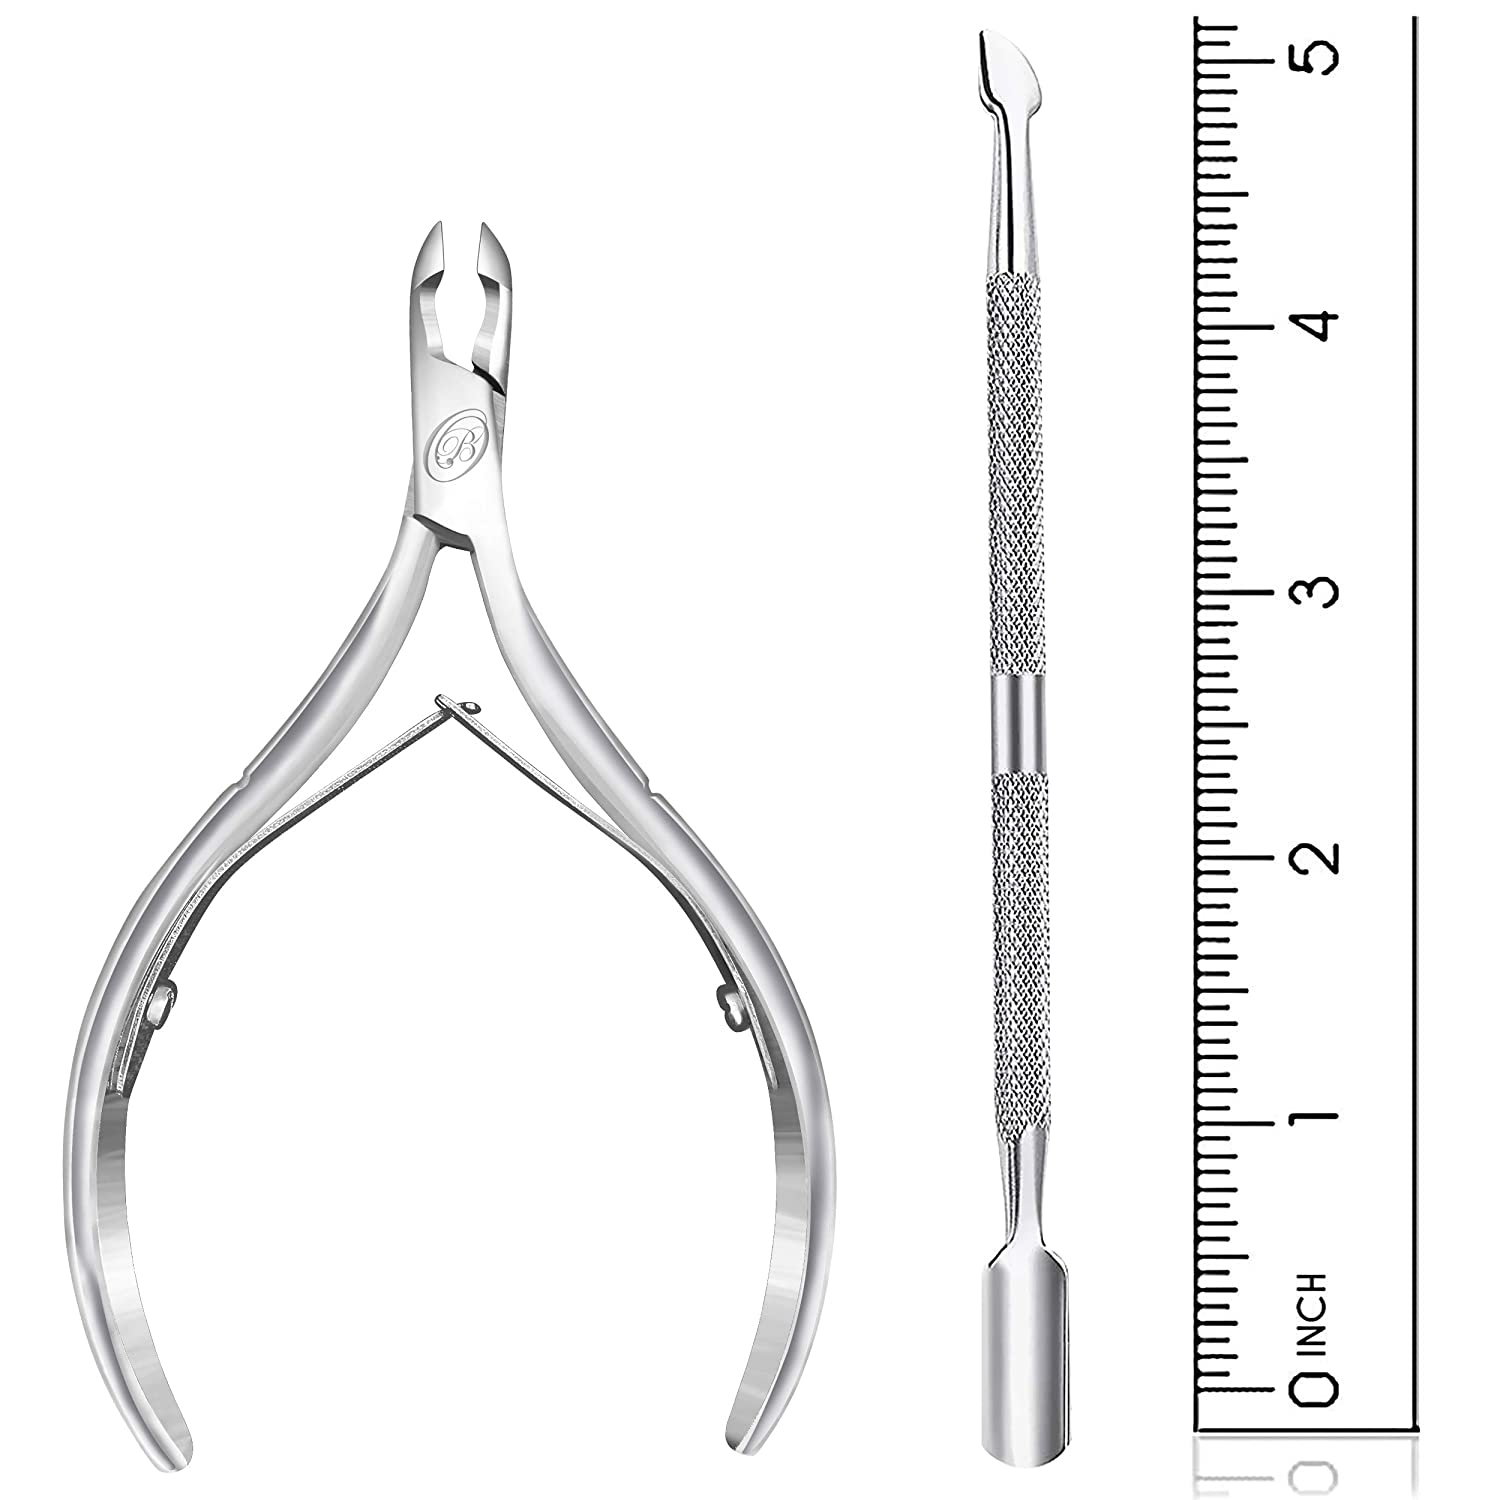 Cuticle Nipper with Cuticle Pusher- Professional Grade Stainless Steel Cuticle Remover and Cutter - Durable Manicure and Pedicure Tool - Beauty Tool Perfect for Fingernails and Toenails (Silver): Beauty